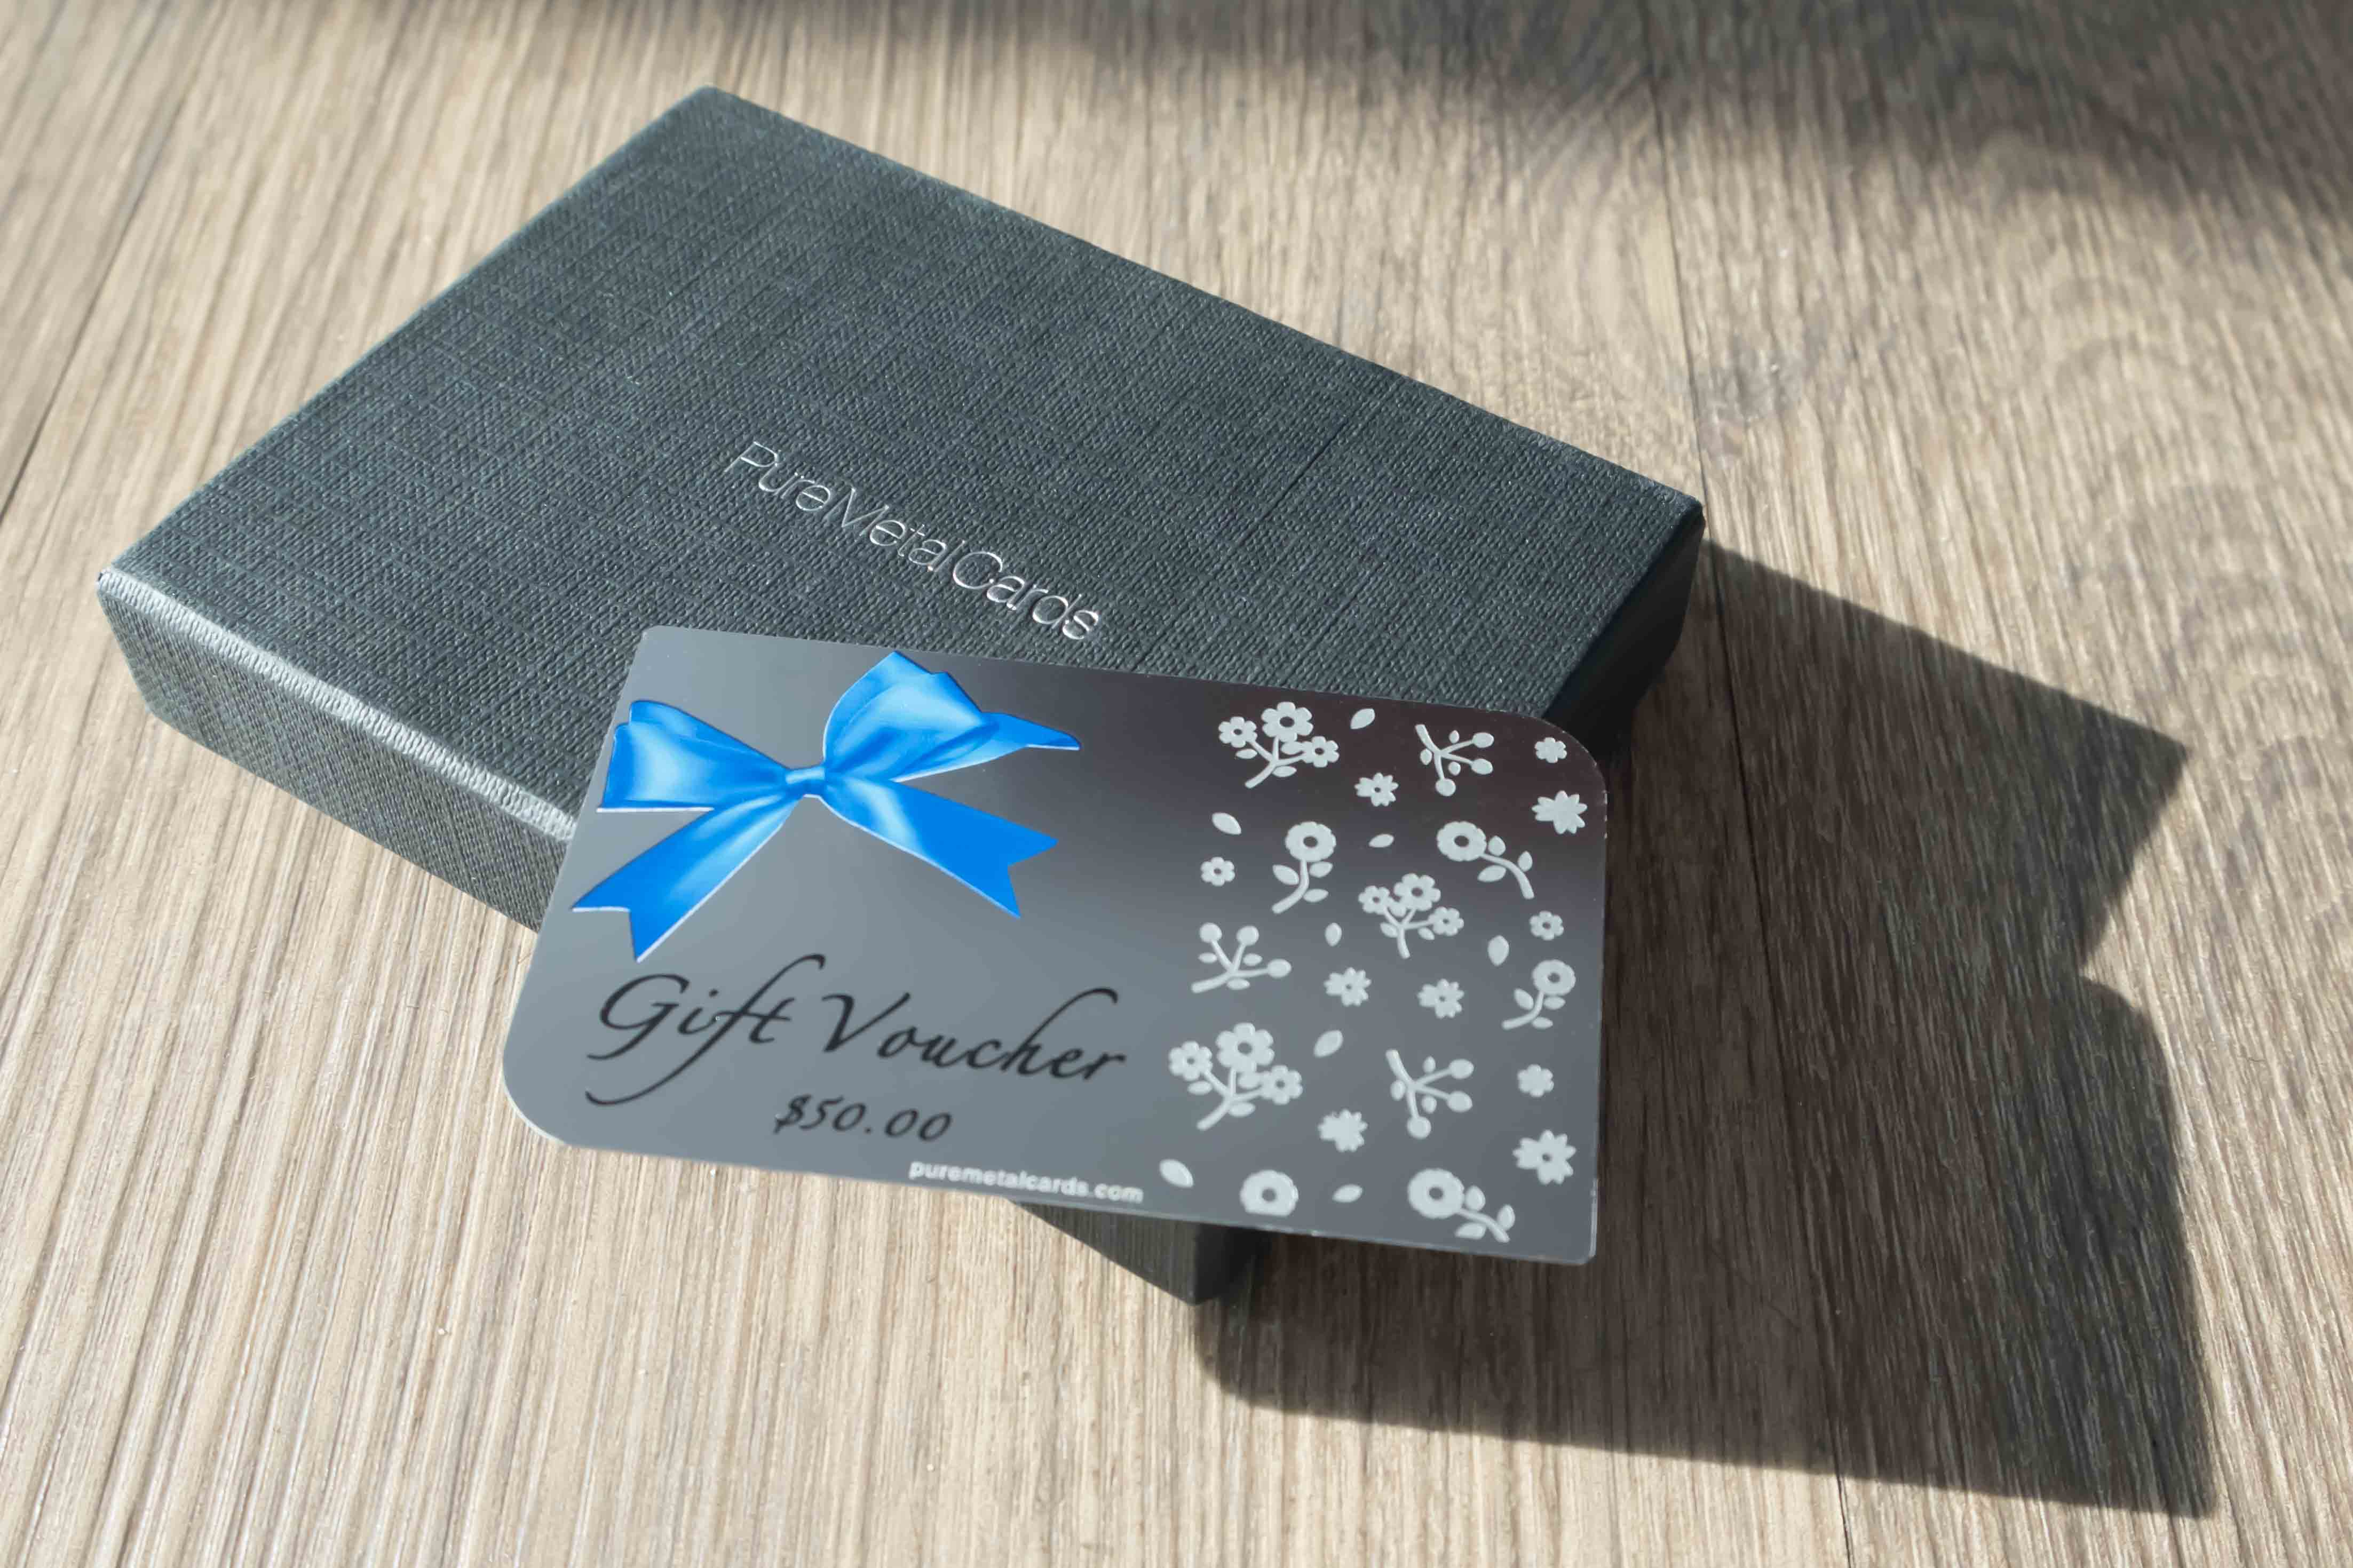 Pure Metal Cards - standard stainless steel gift voucher card